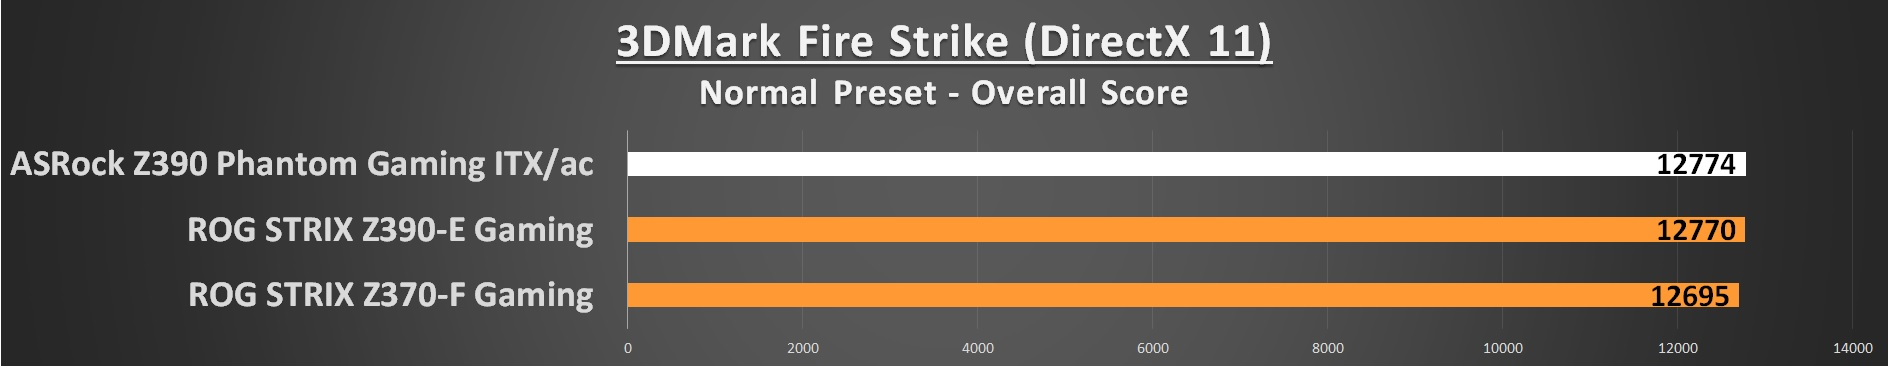 3DMark Fire Strike 11